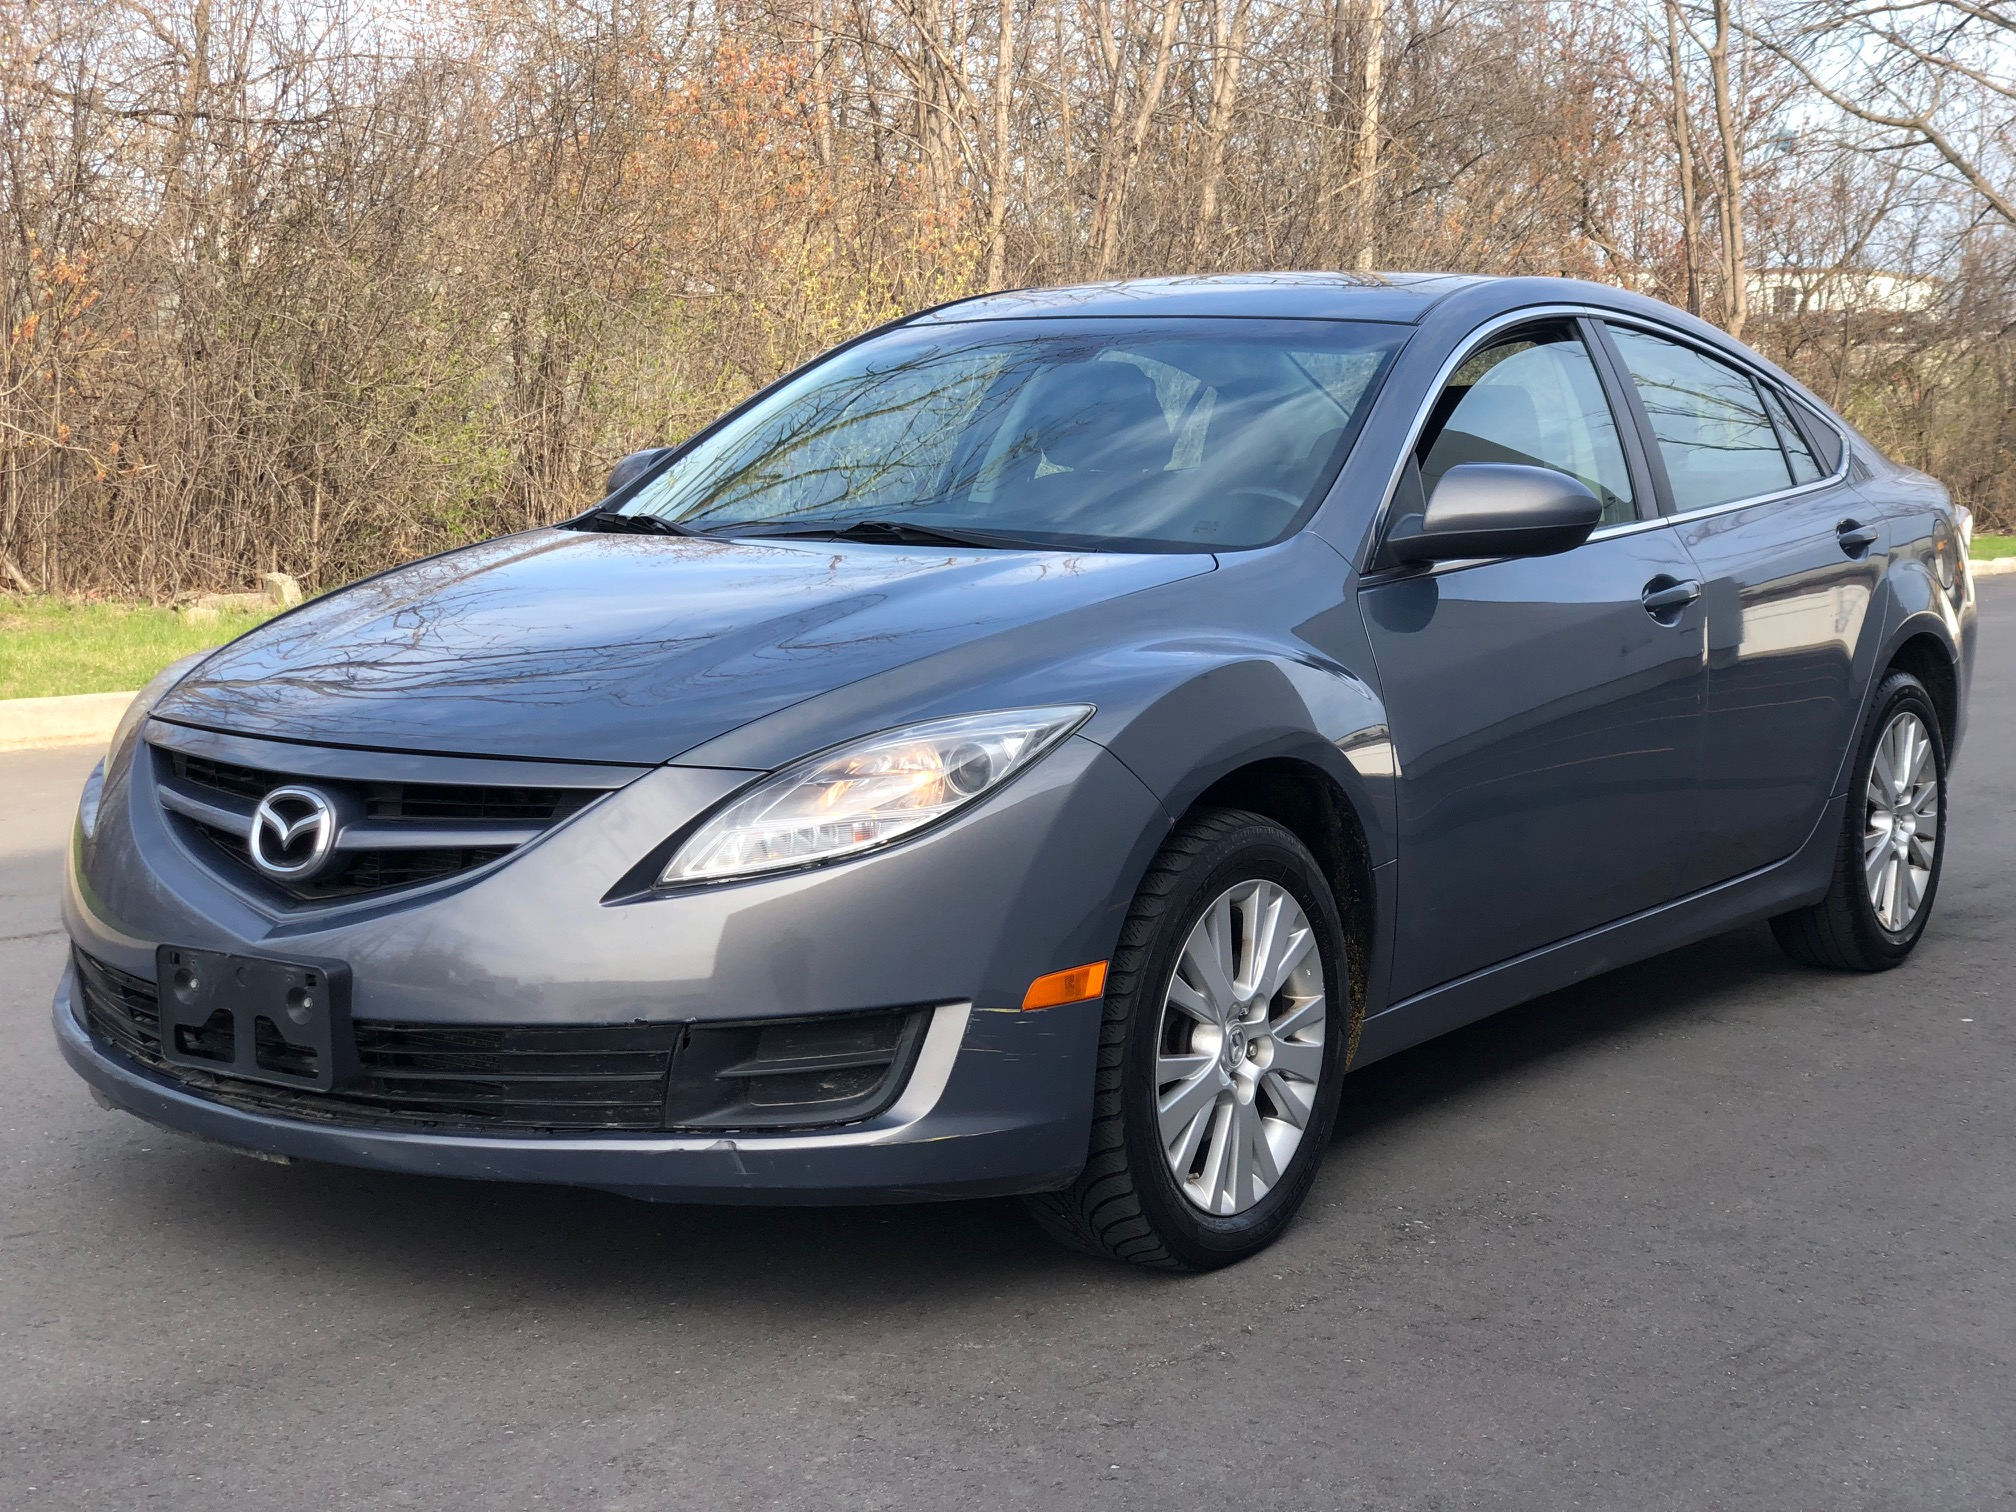 2009-Mazda-Mazda6-4-Cyl-Automatic-Certified-Sedan